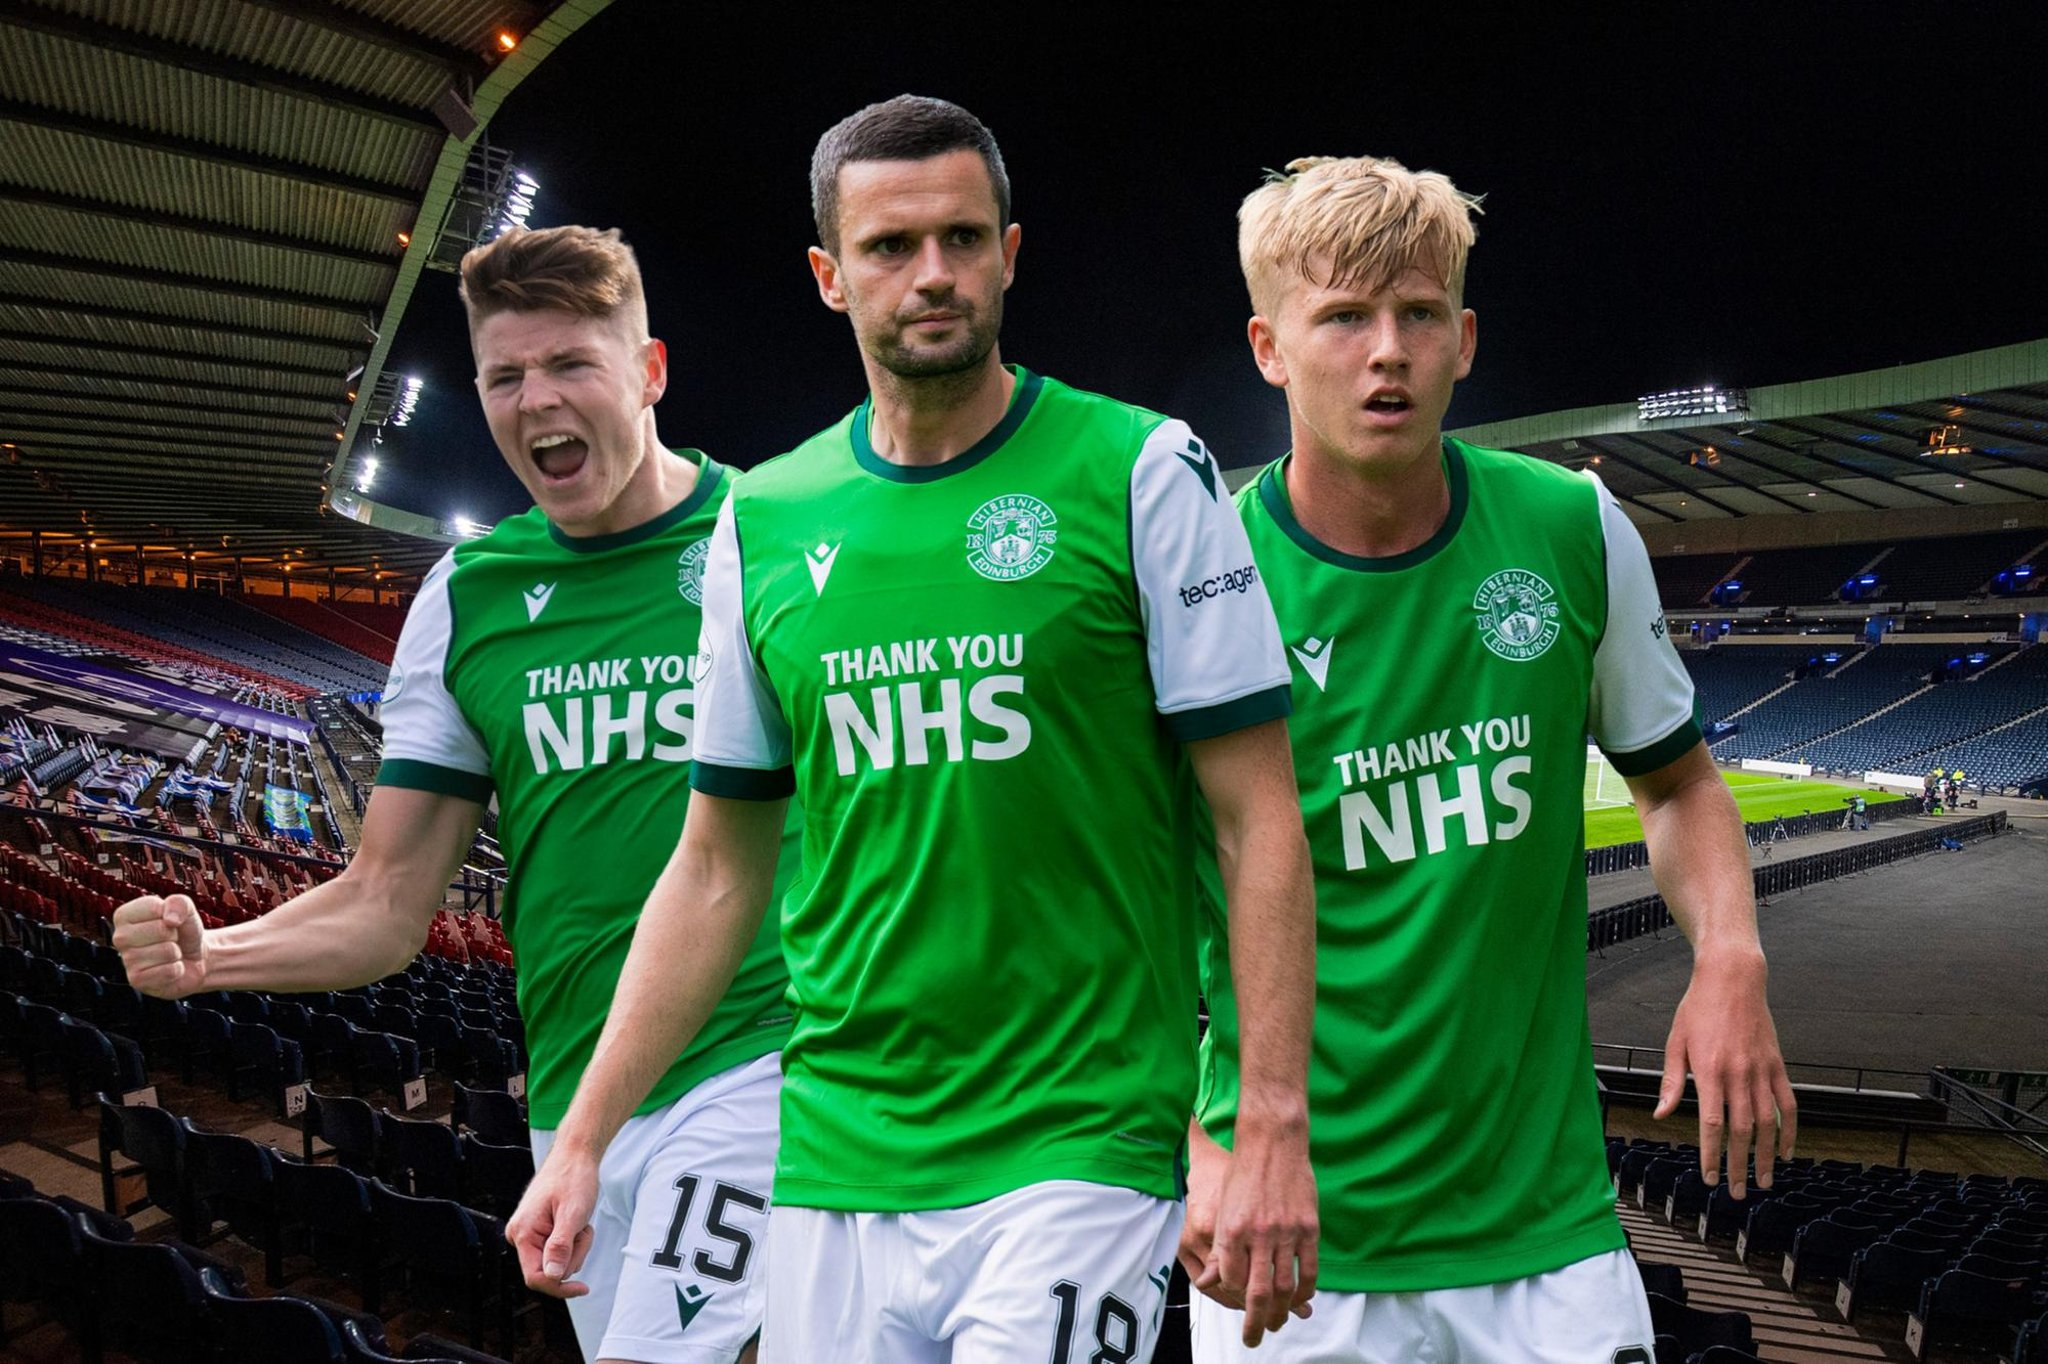 St Johnstone 0-0 Hibs: Live updates as Hibees target place in the Betfred Cup final